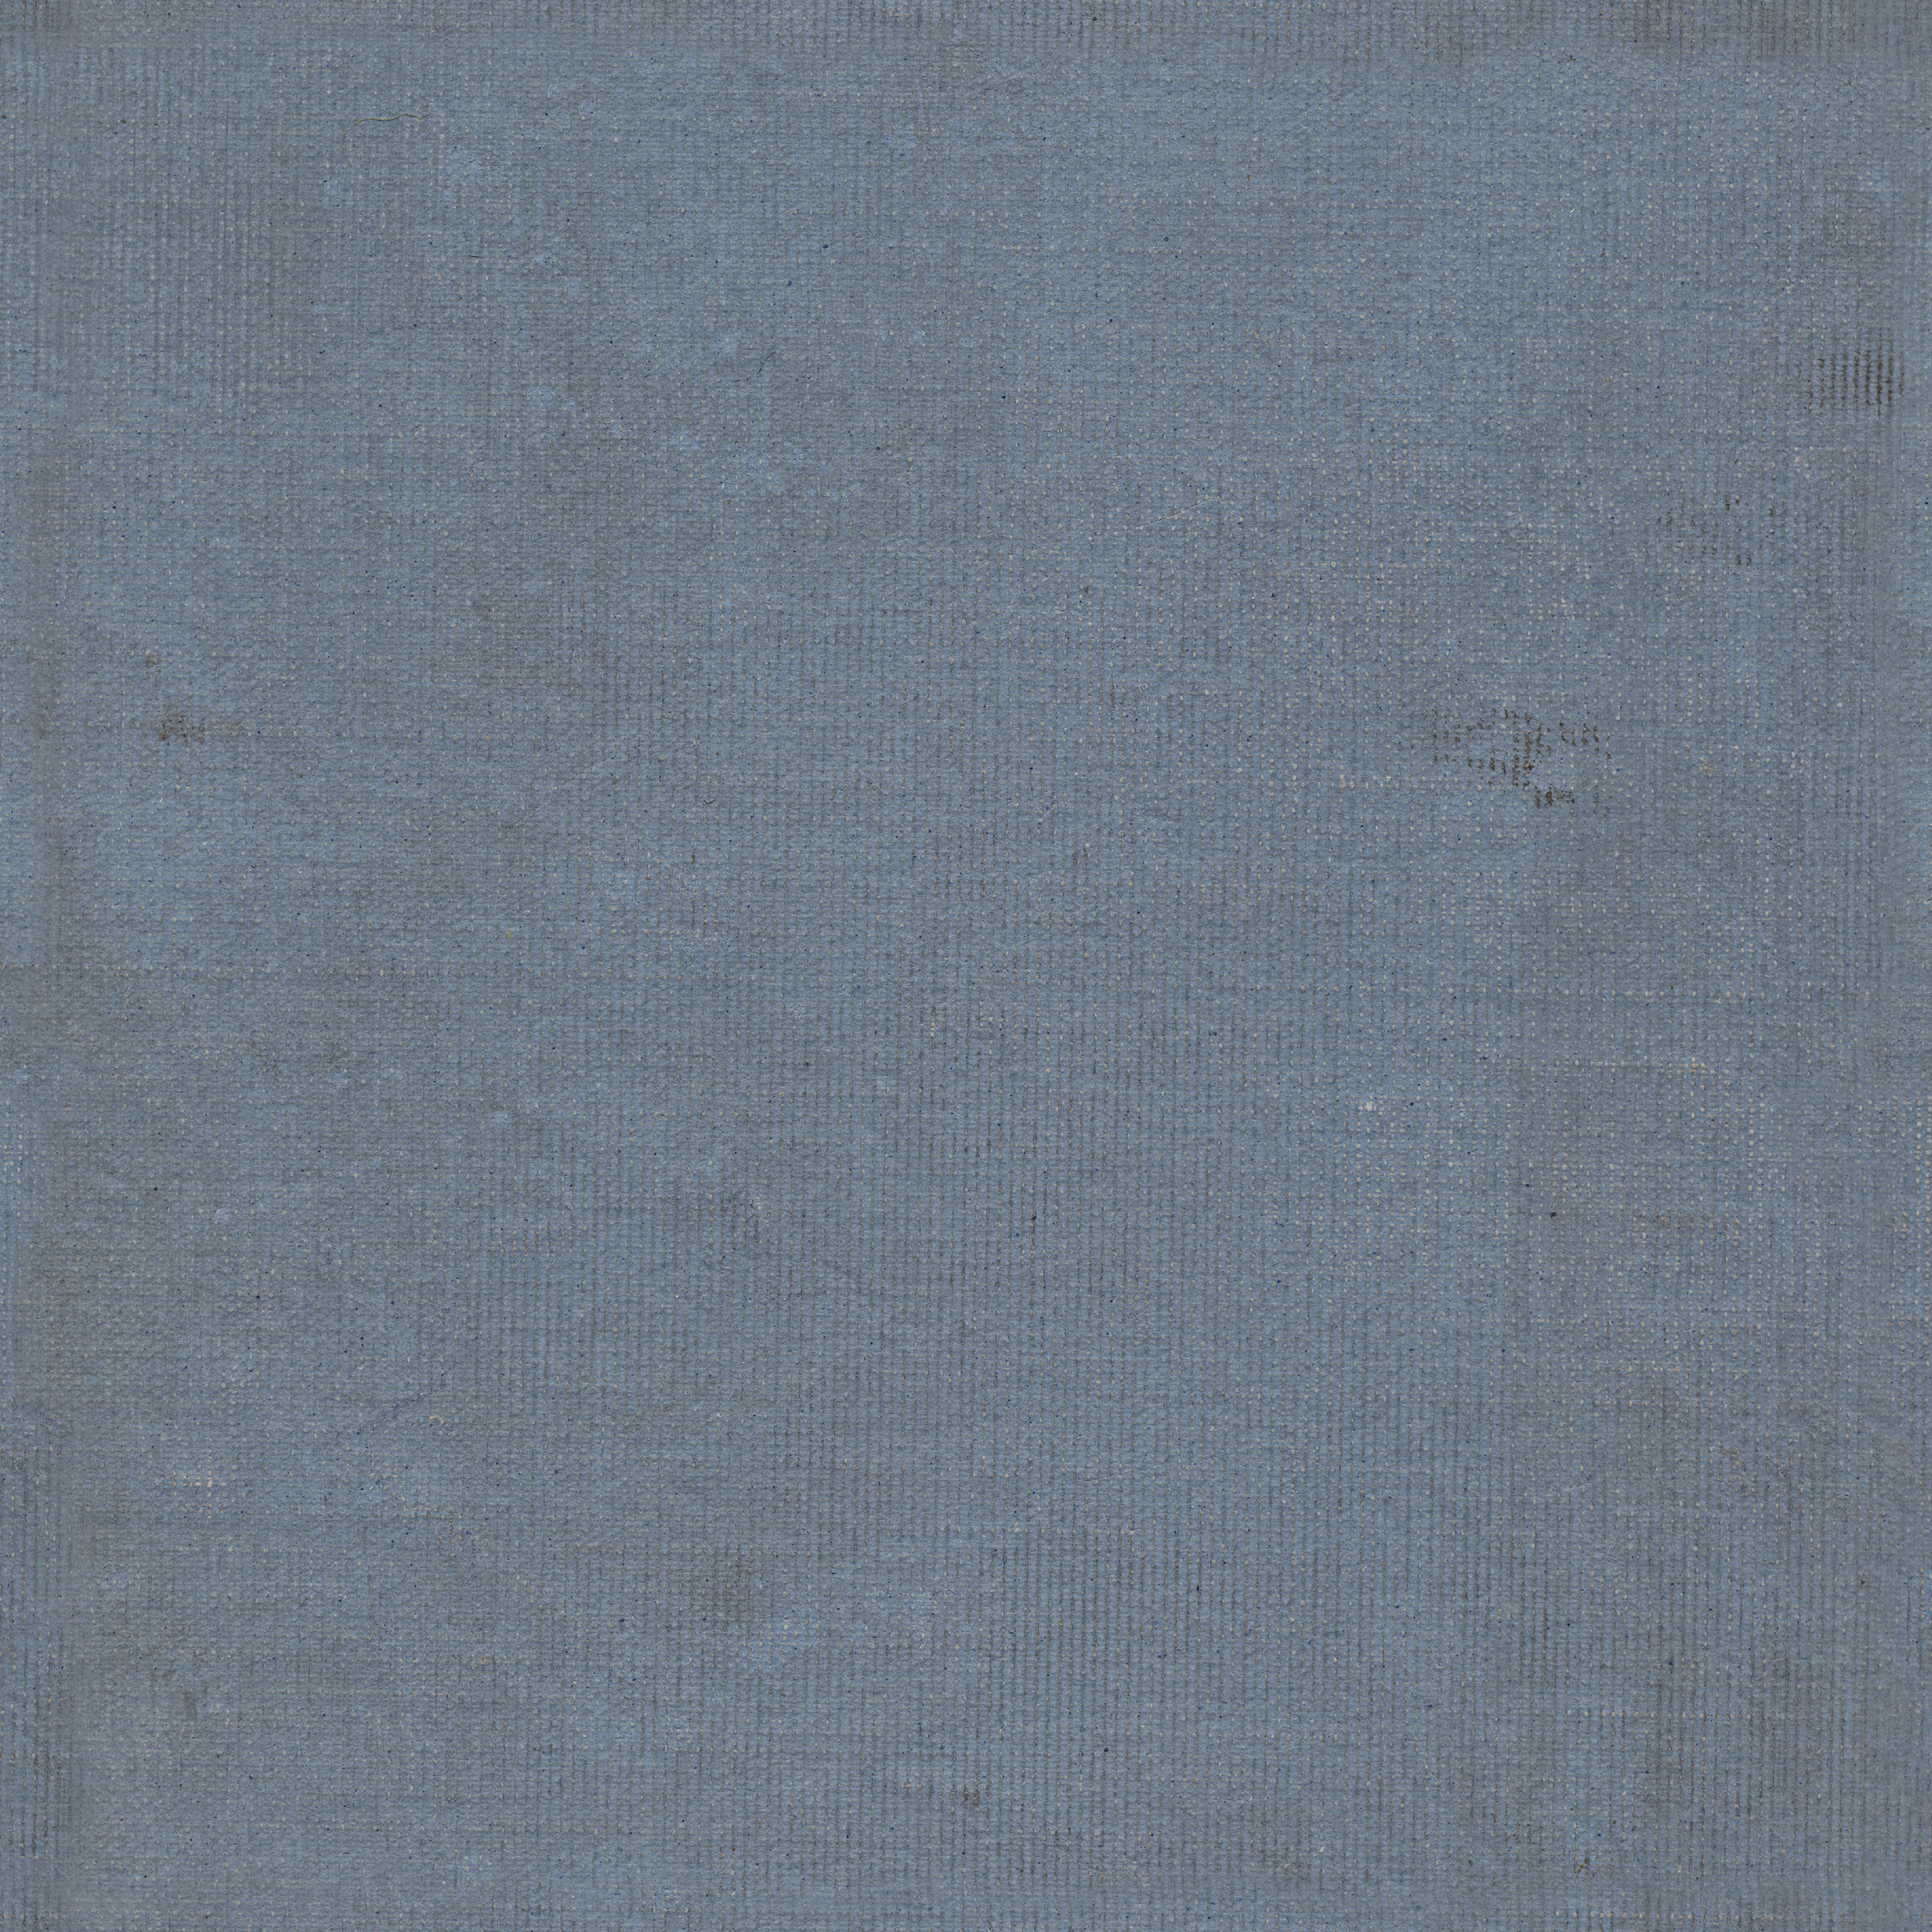 free seamless book cover textures texture